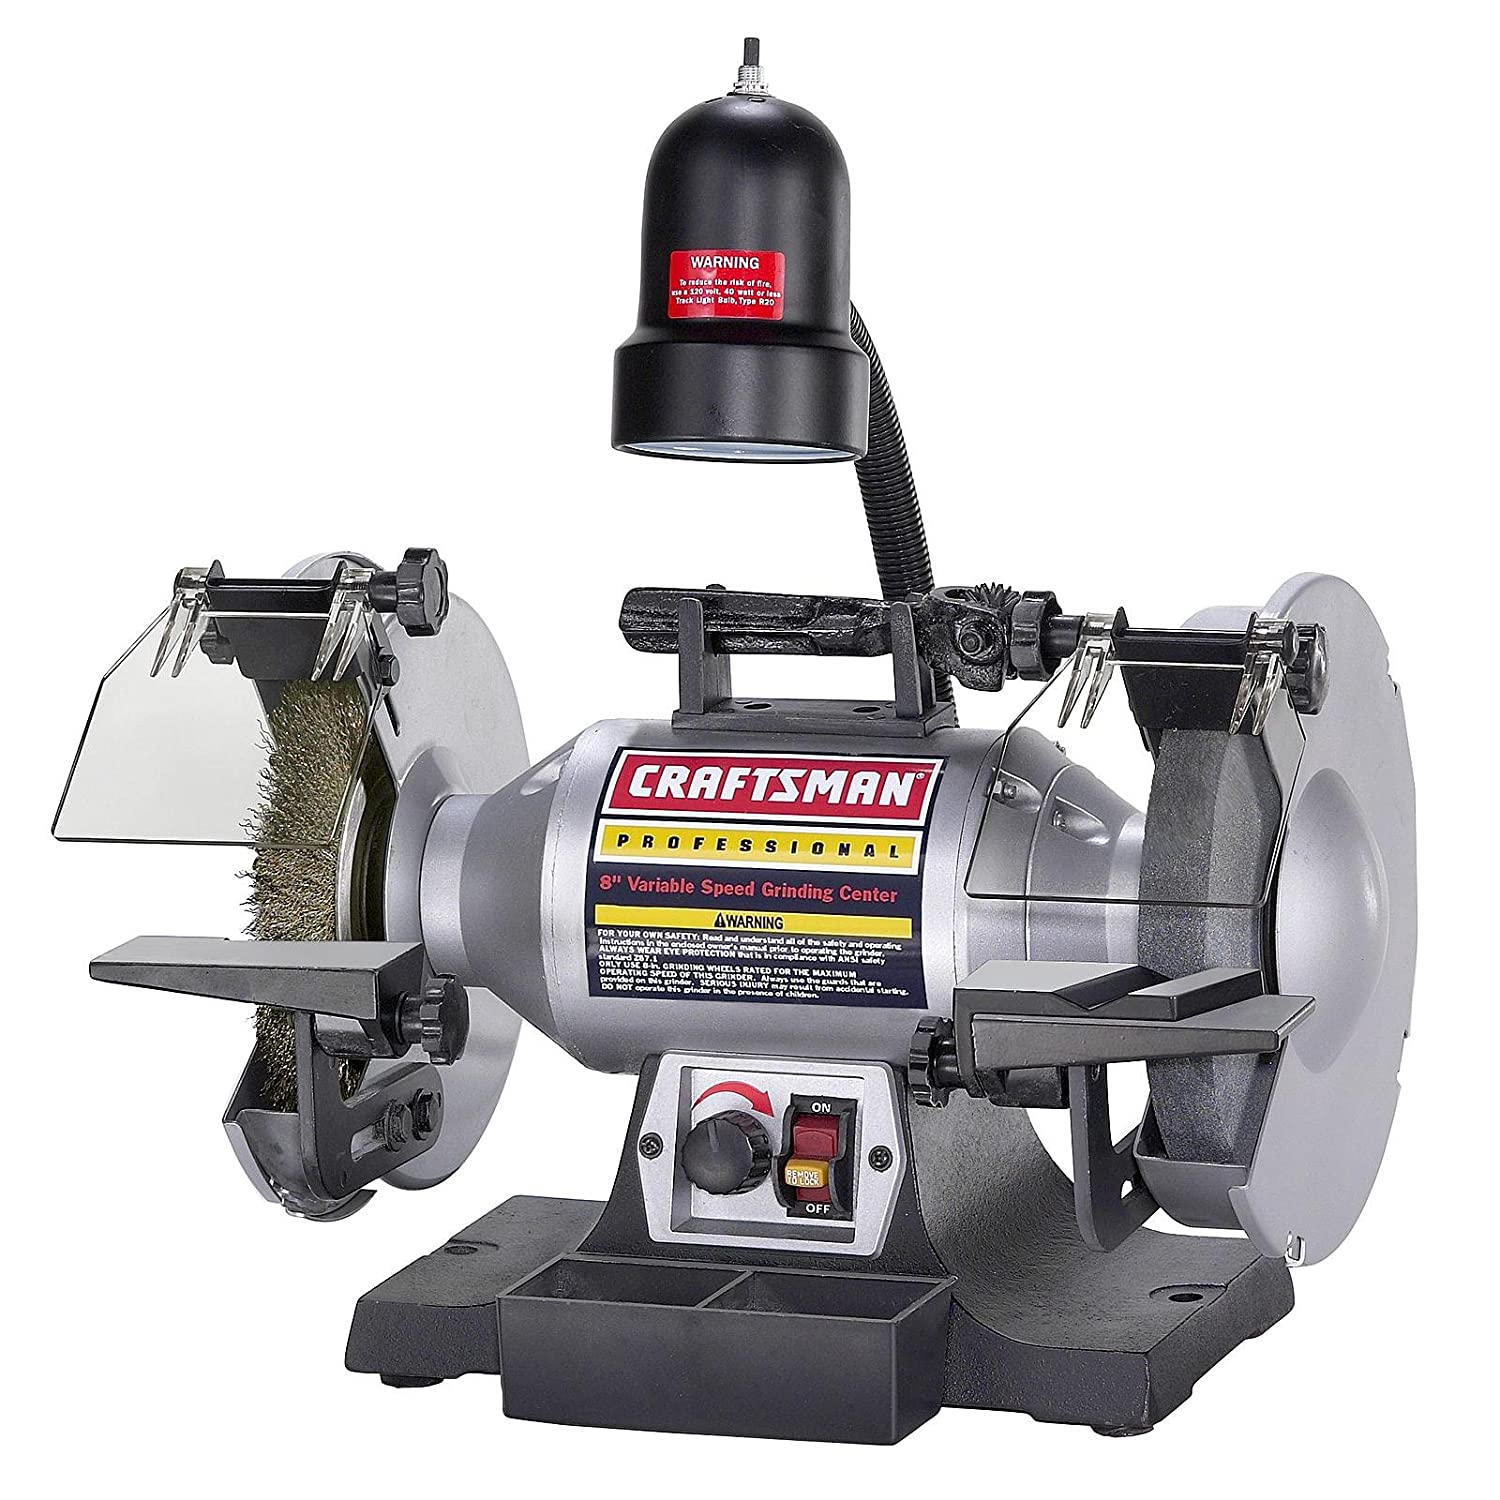 "Craftsman Professional Variable Speed 8"" Bench Grinder (21162) - -  Amazon.com"